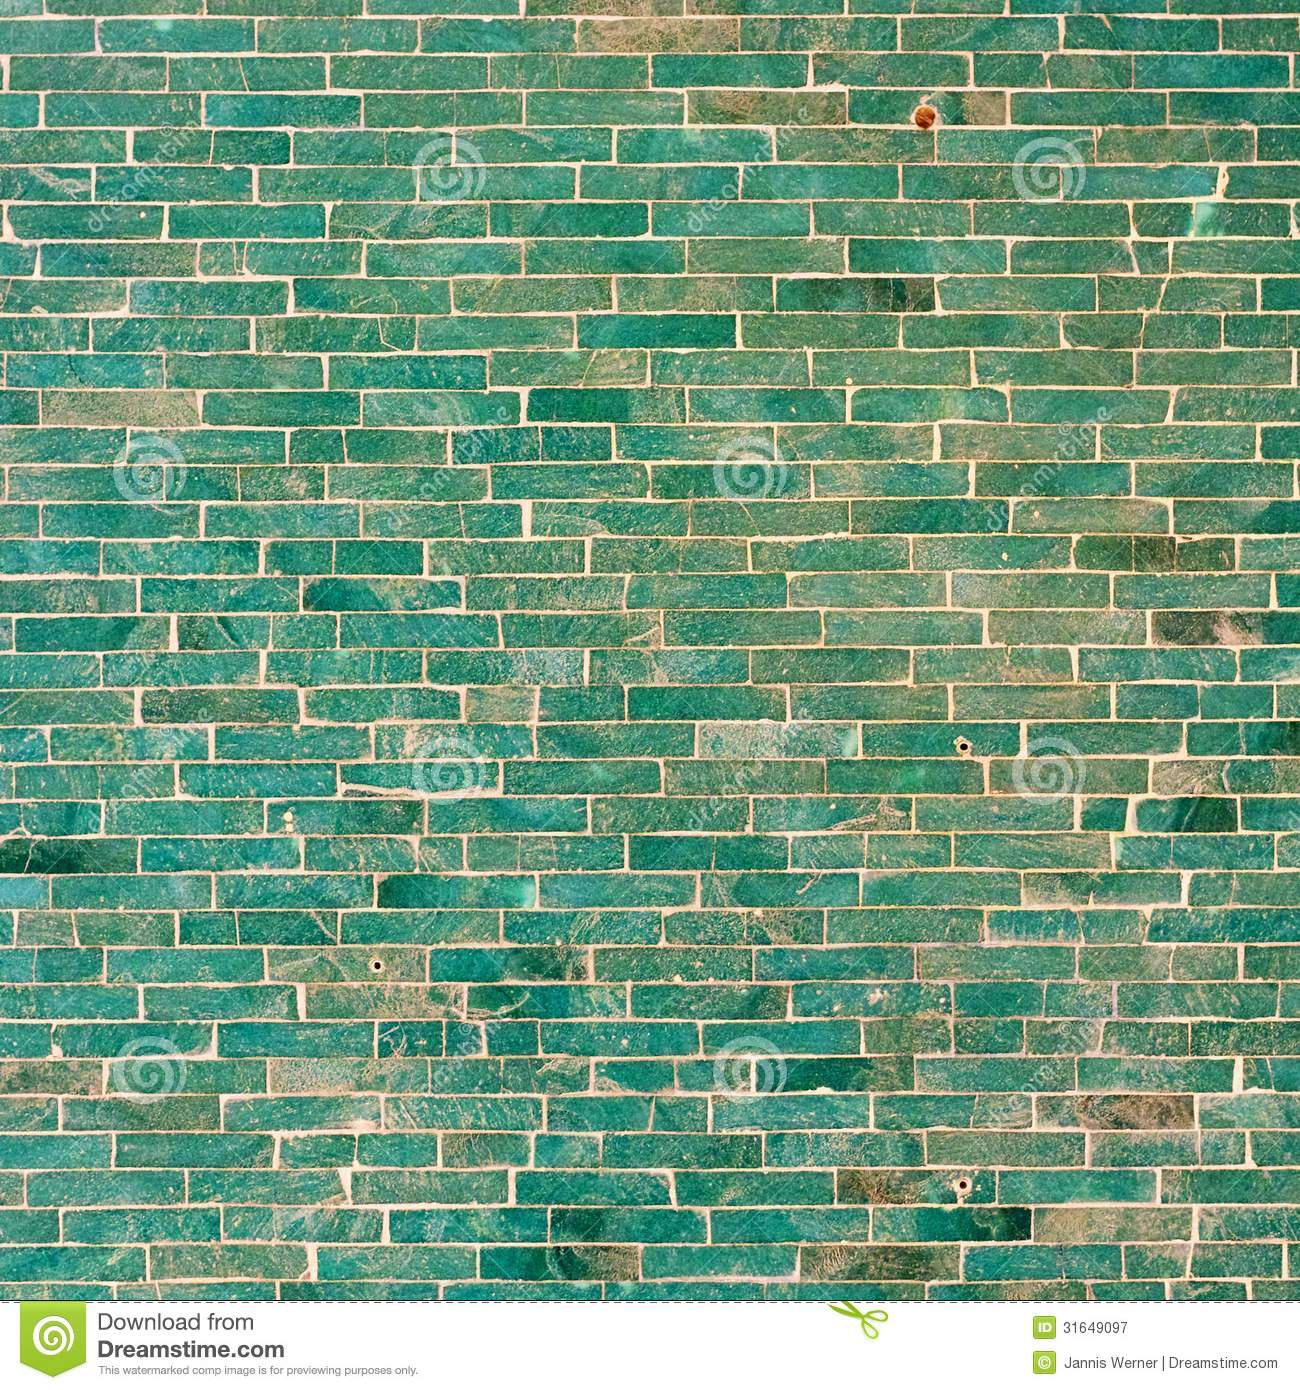 Turquoise Tile turquoise tile wall background royalty free stock photography